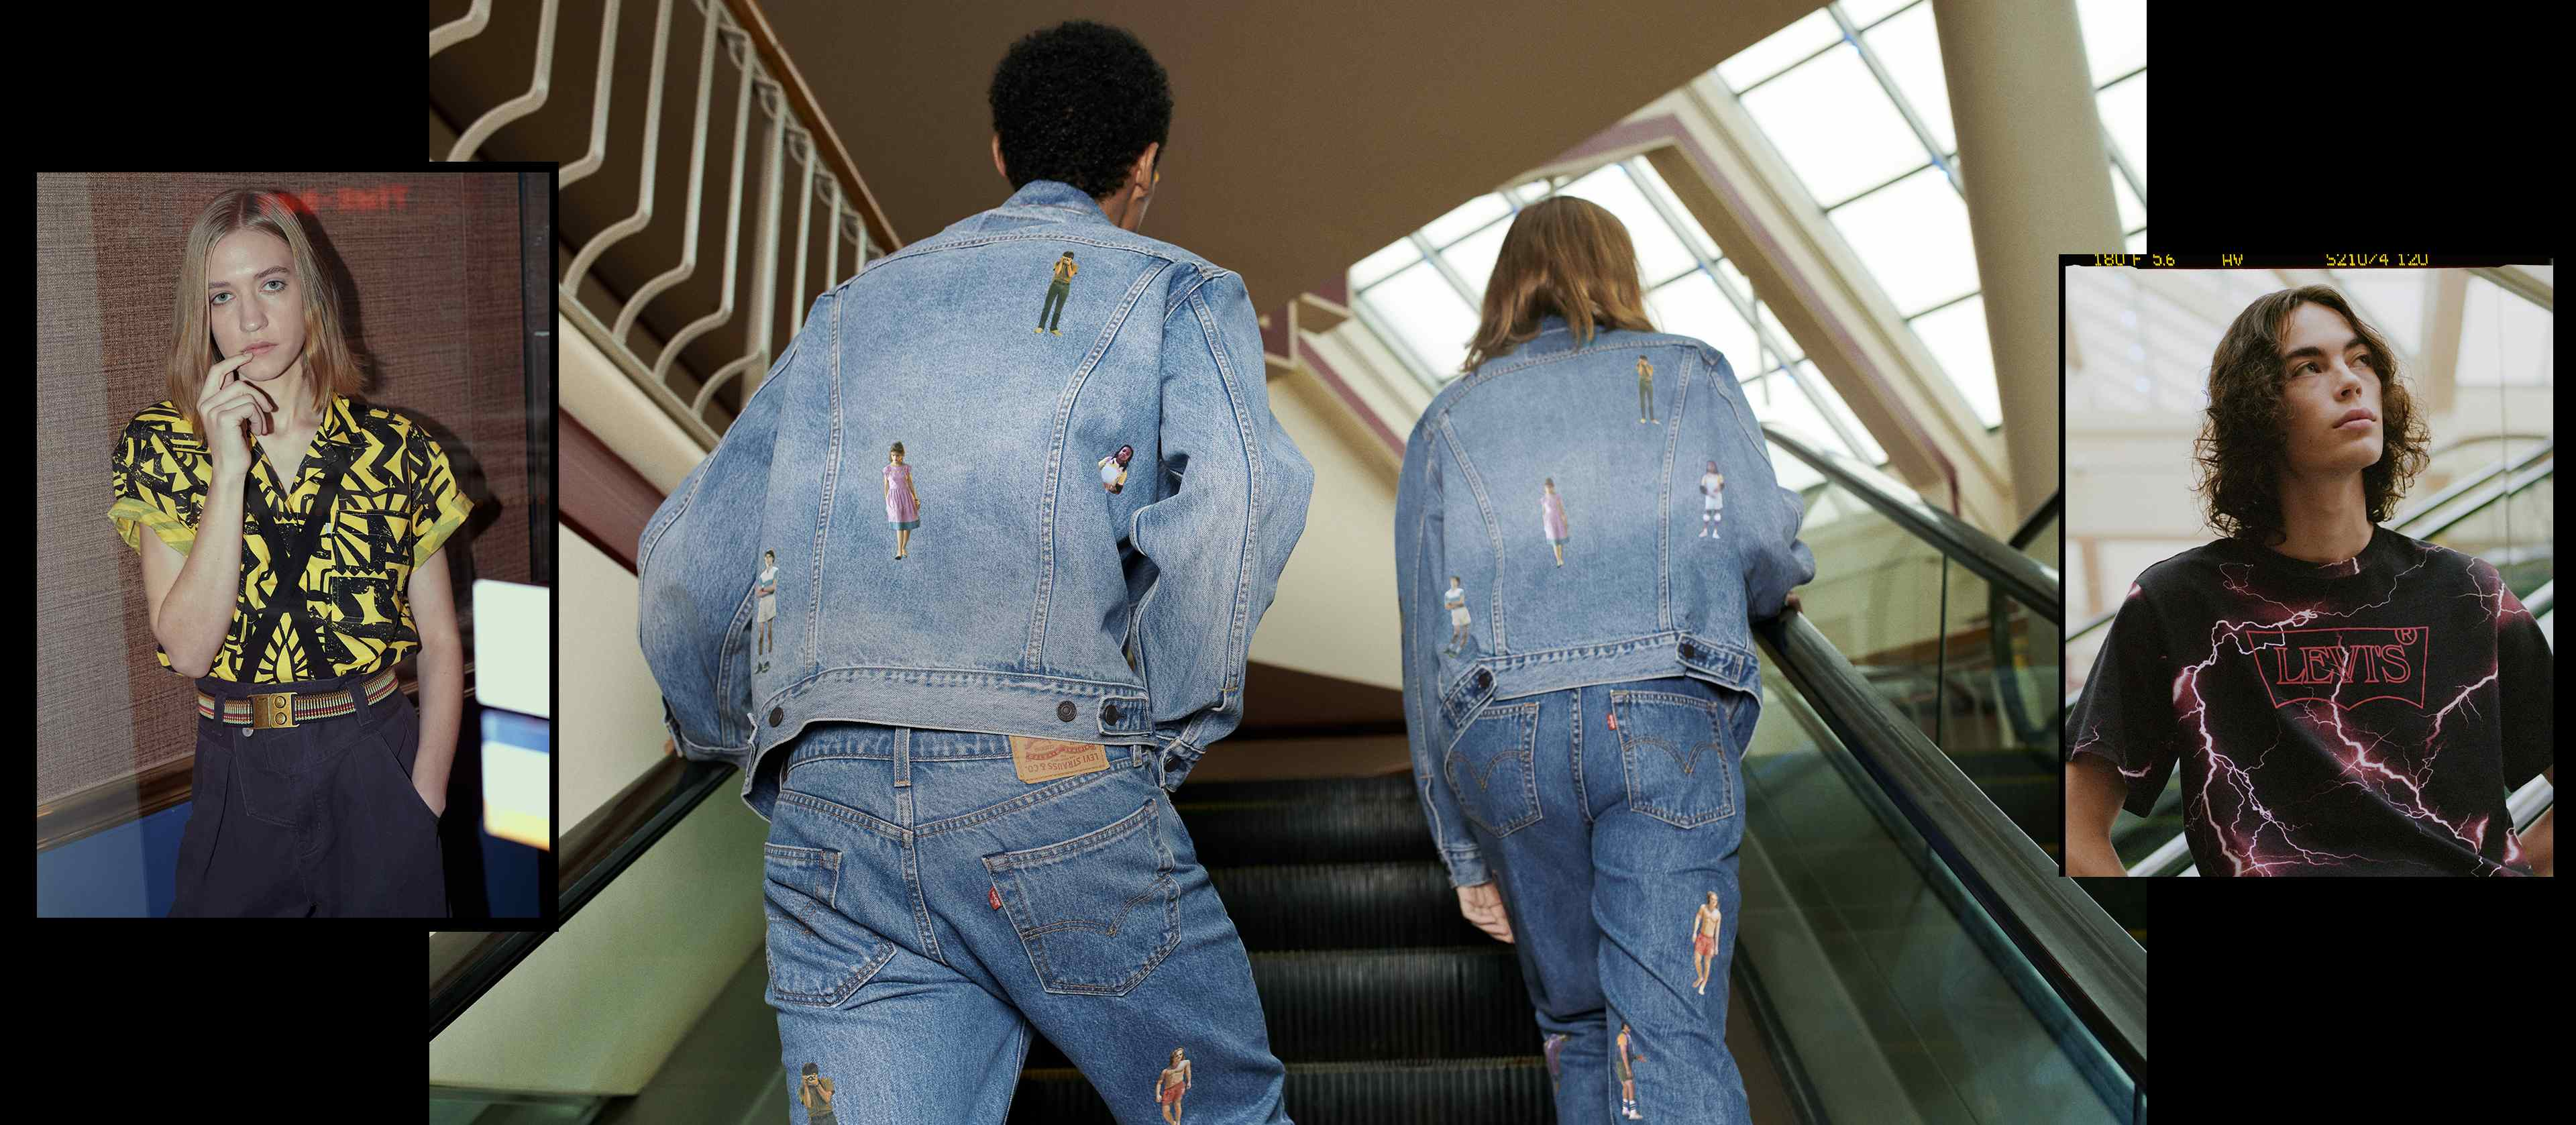 f3dab8cd6e8 Jeans, Denim Jackets & Clothing | Levi's® Official Site